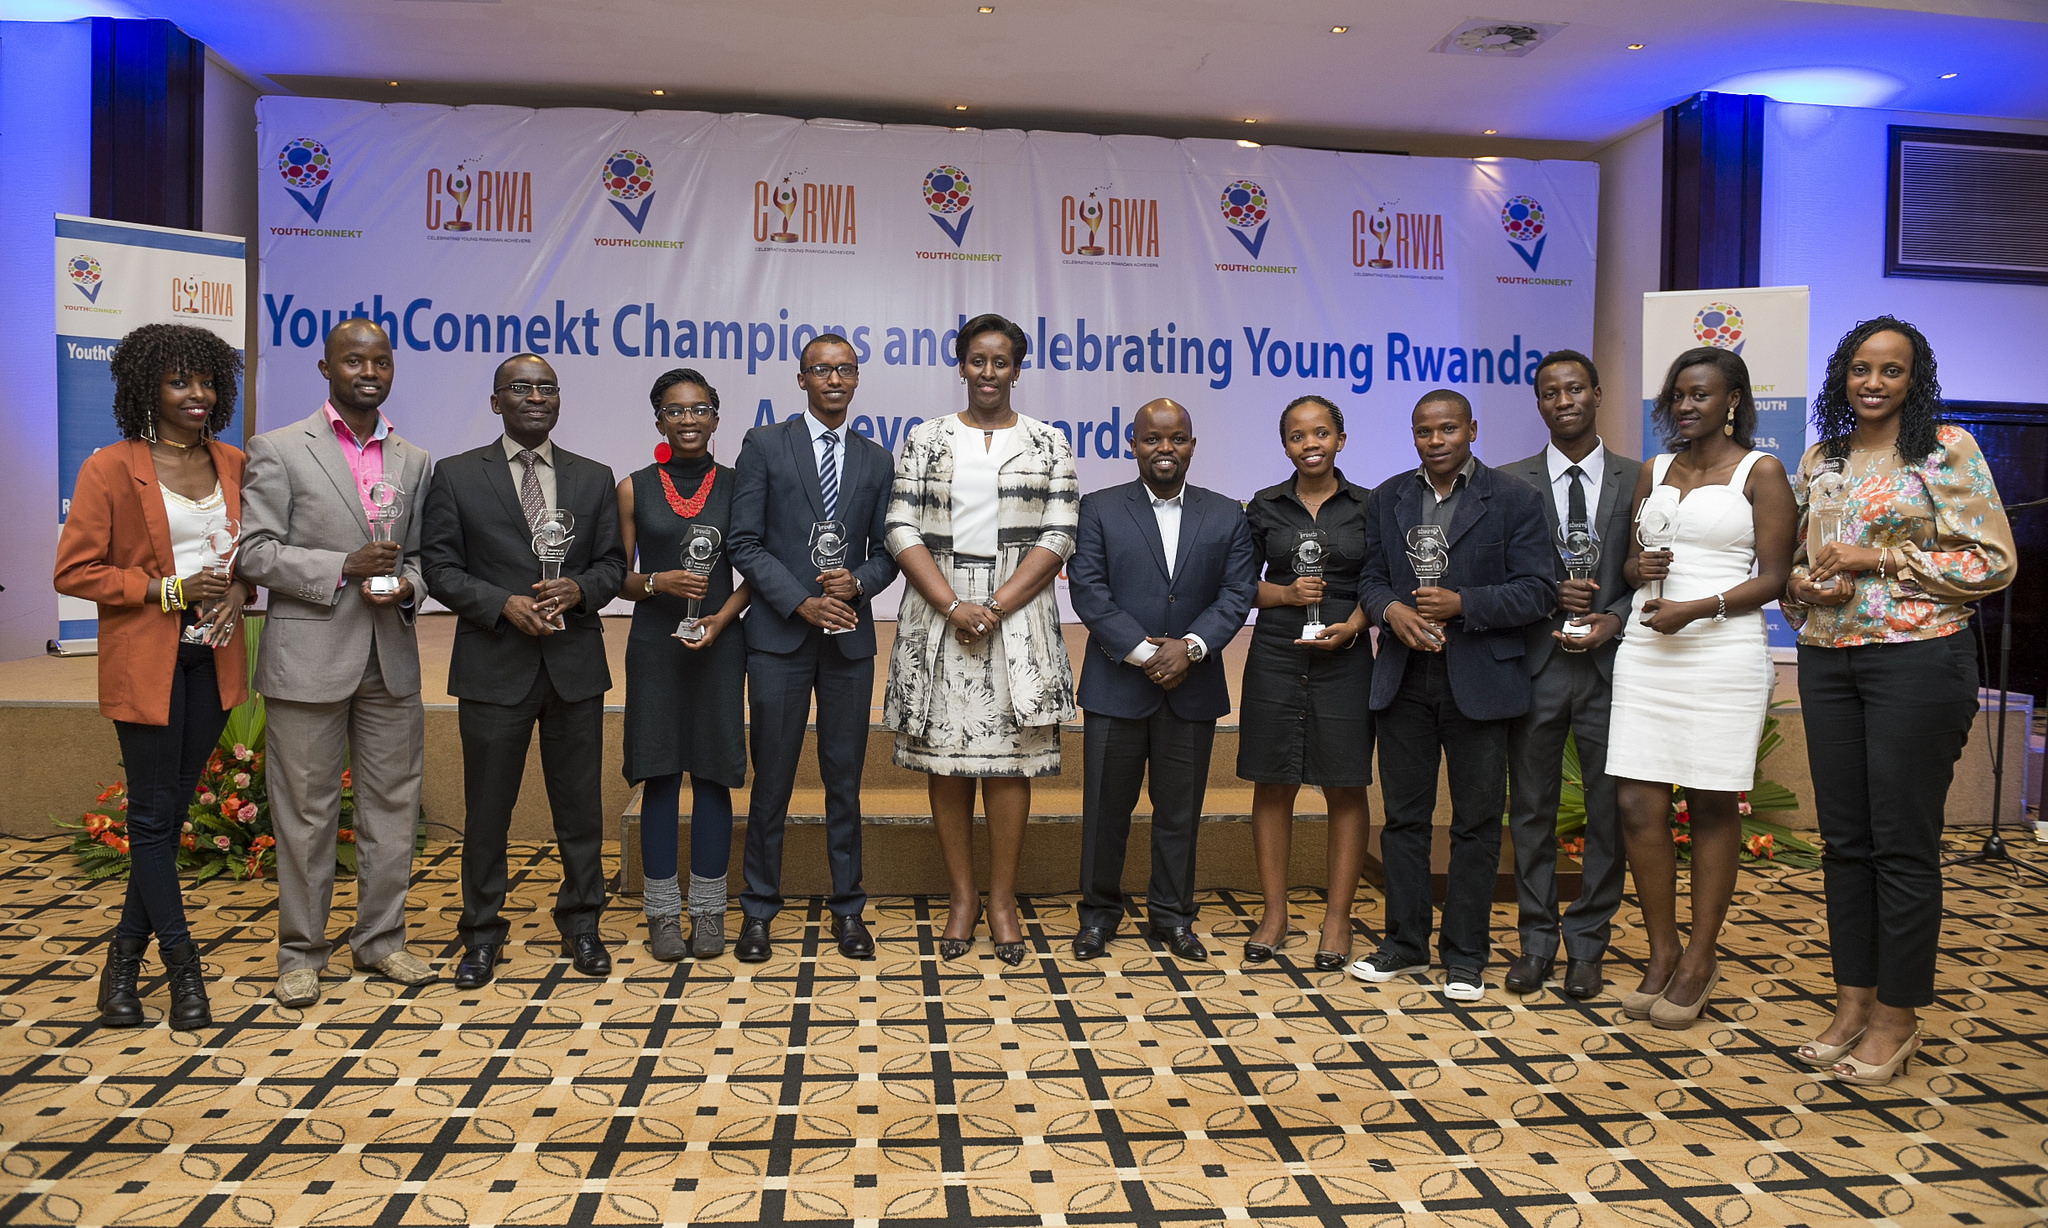 Lady Jeannette Kagame (C), on her right is MYICT Minister Philbert Nsengimana, and the awardees